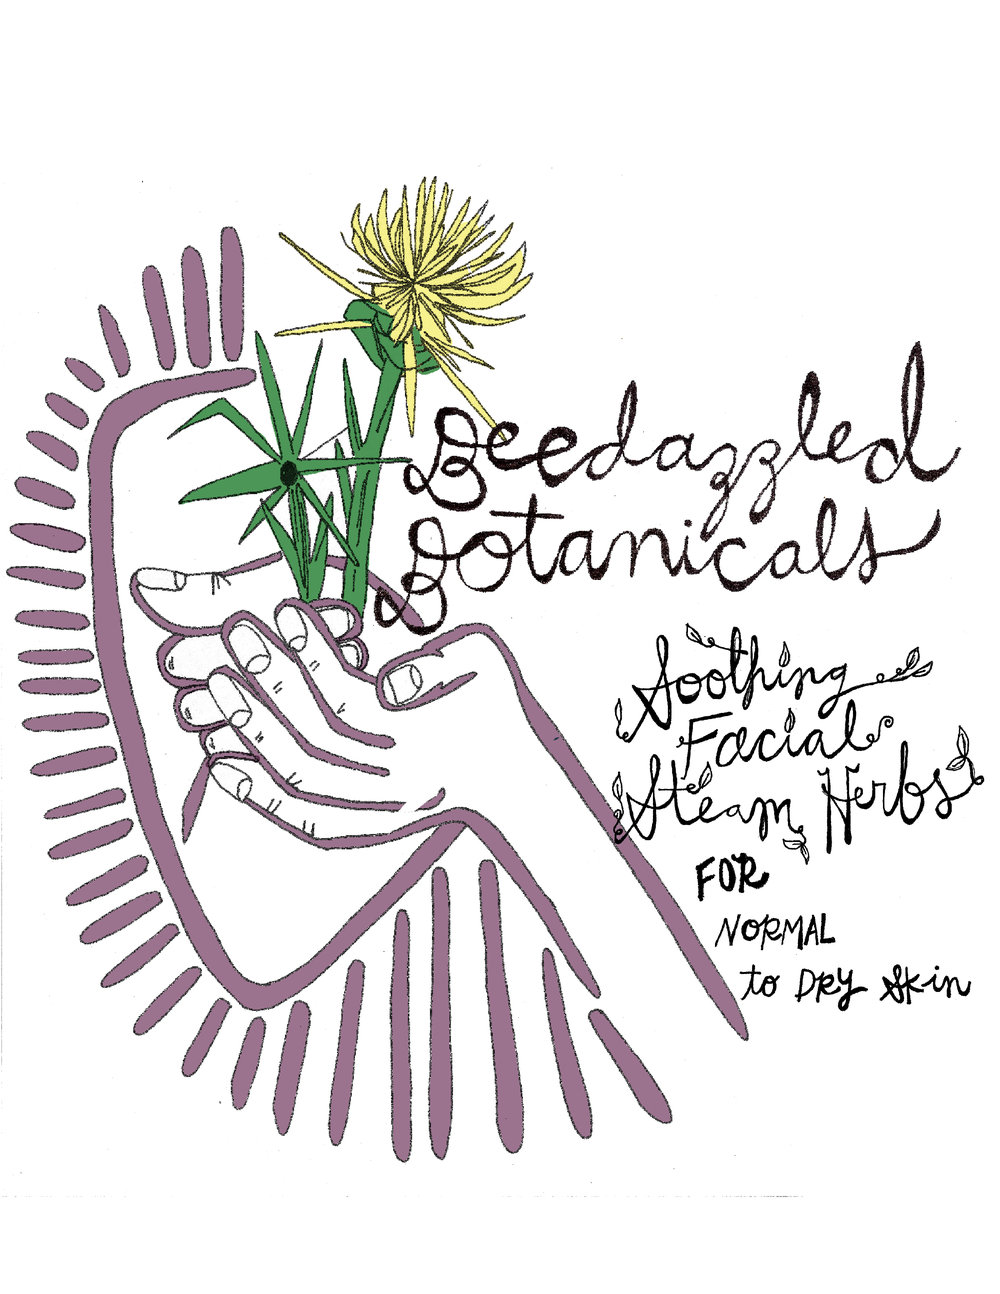 Label for Beedazzled Botanicals skincare products in Benzonia, MI